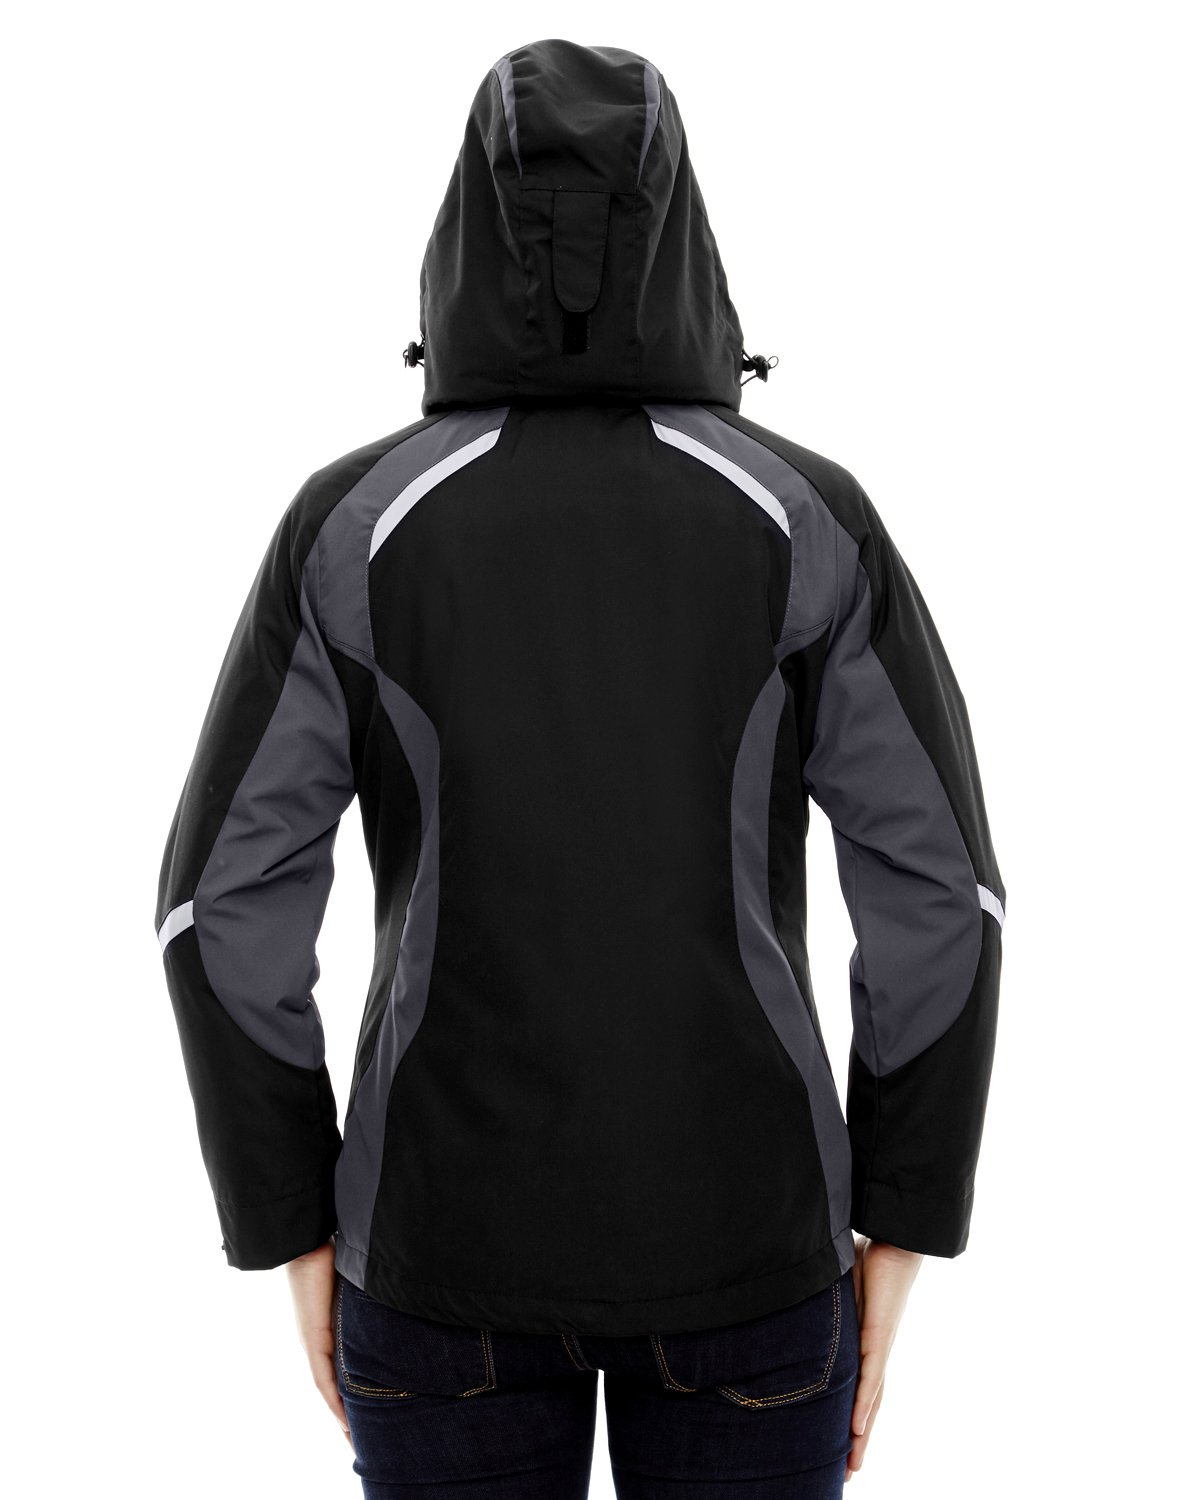 North End Height Ladies 3-In-1 Insulated Liner Jacket, Black, XXX-Large